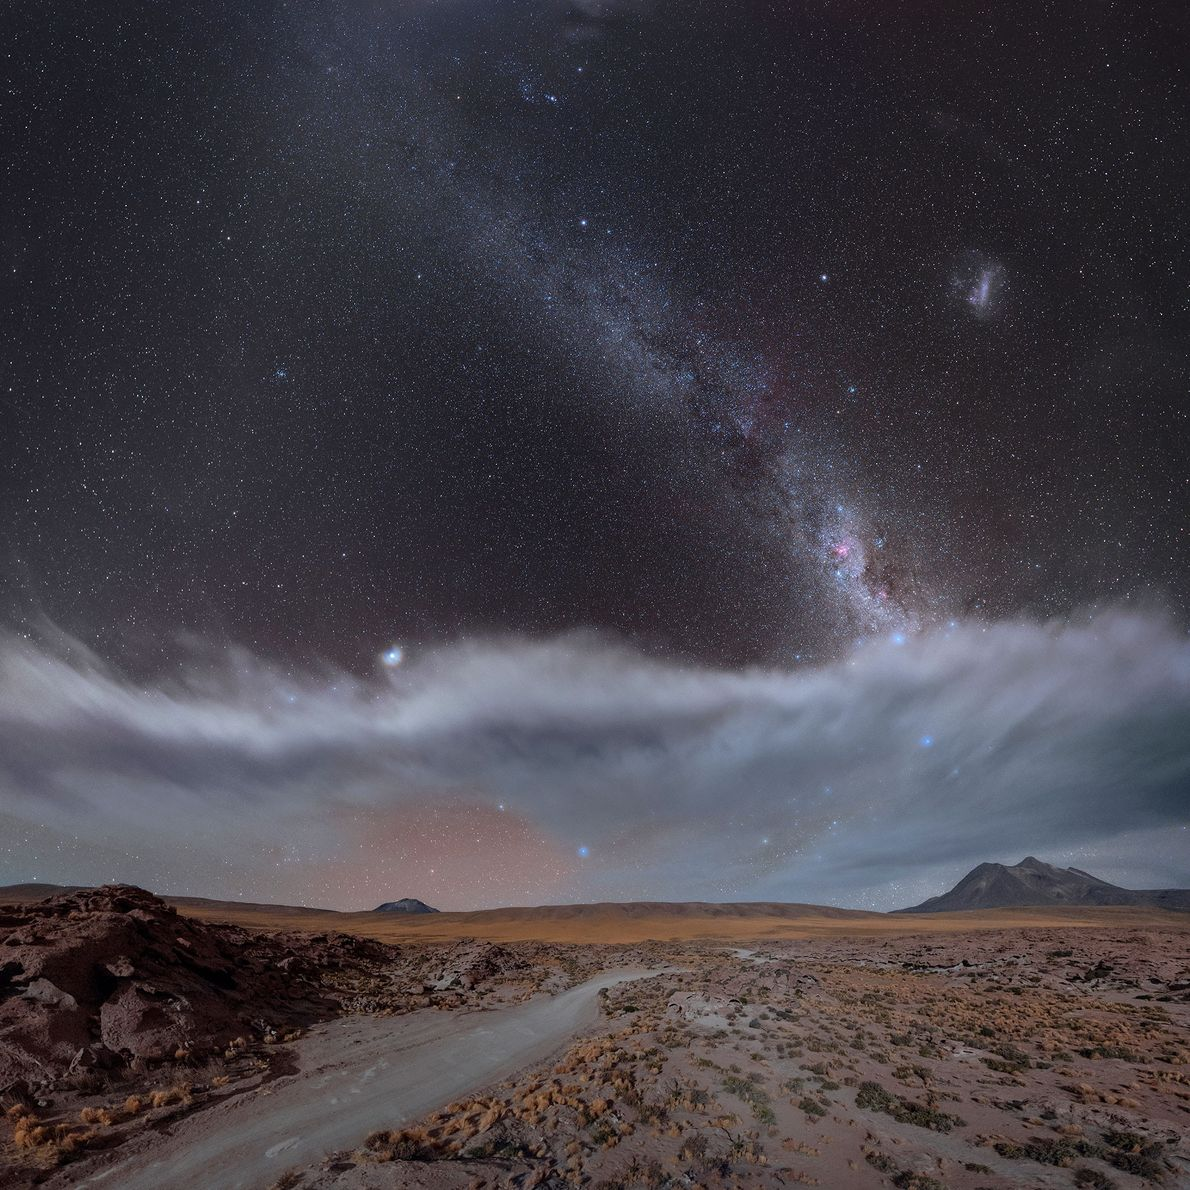 Jupiter can be seen along with the Large Magellanic Cloud near the Miscanti volcano in Chile.